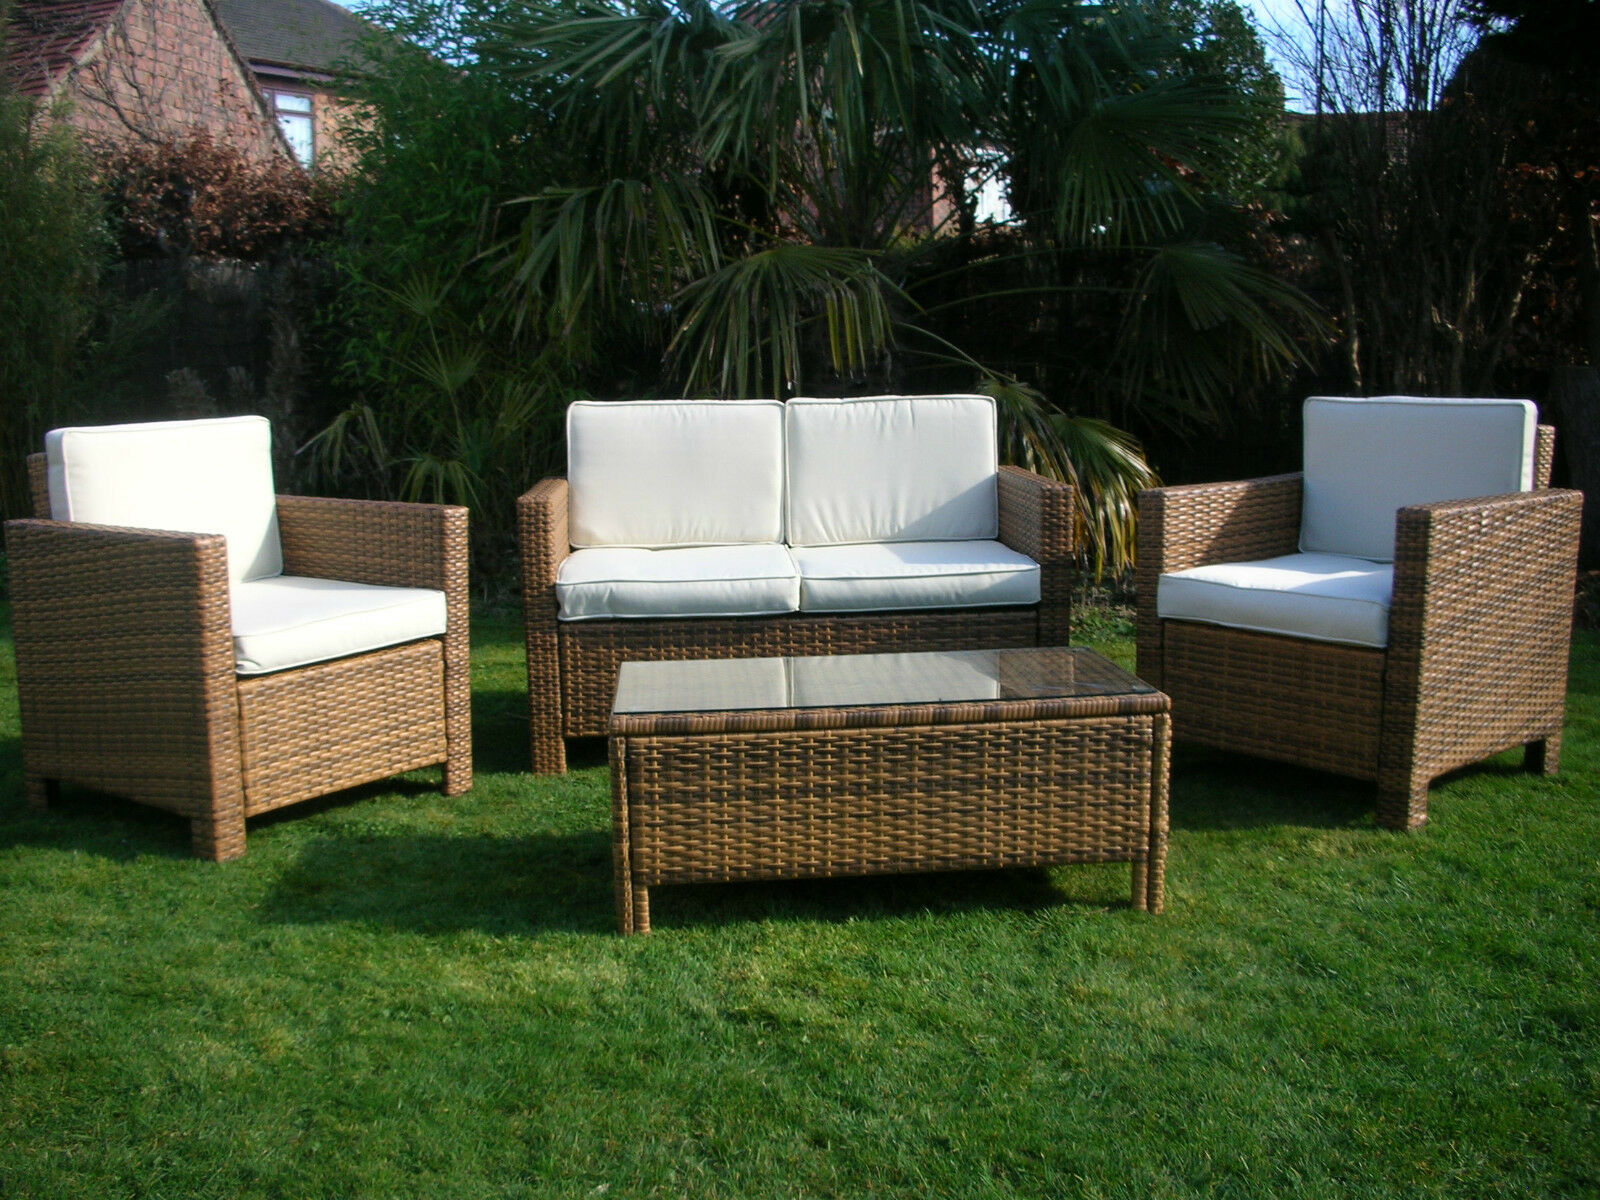 Garden Chair New Garden Rattan Wicker Outdoor Conservatory Furniture